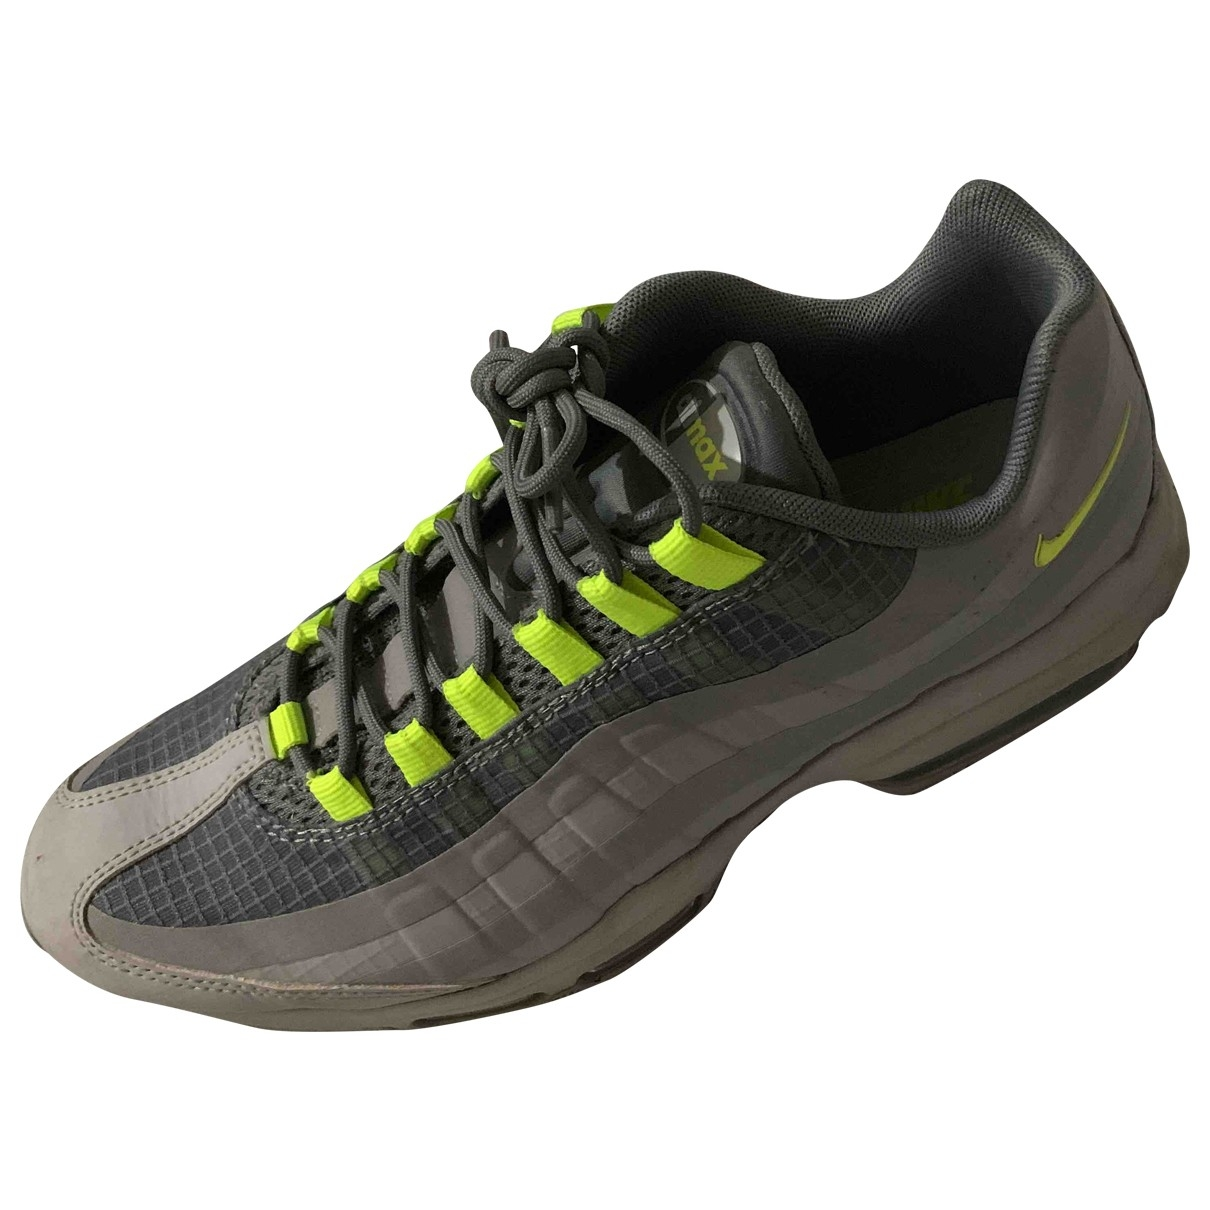 Nike Air Max 95 Grey Trainers for Women 7 UK